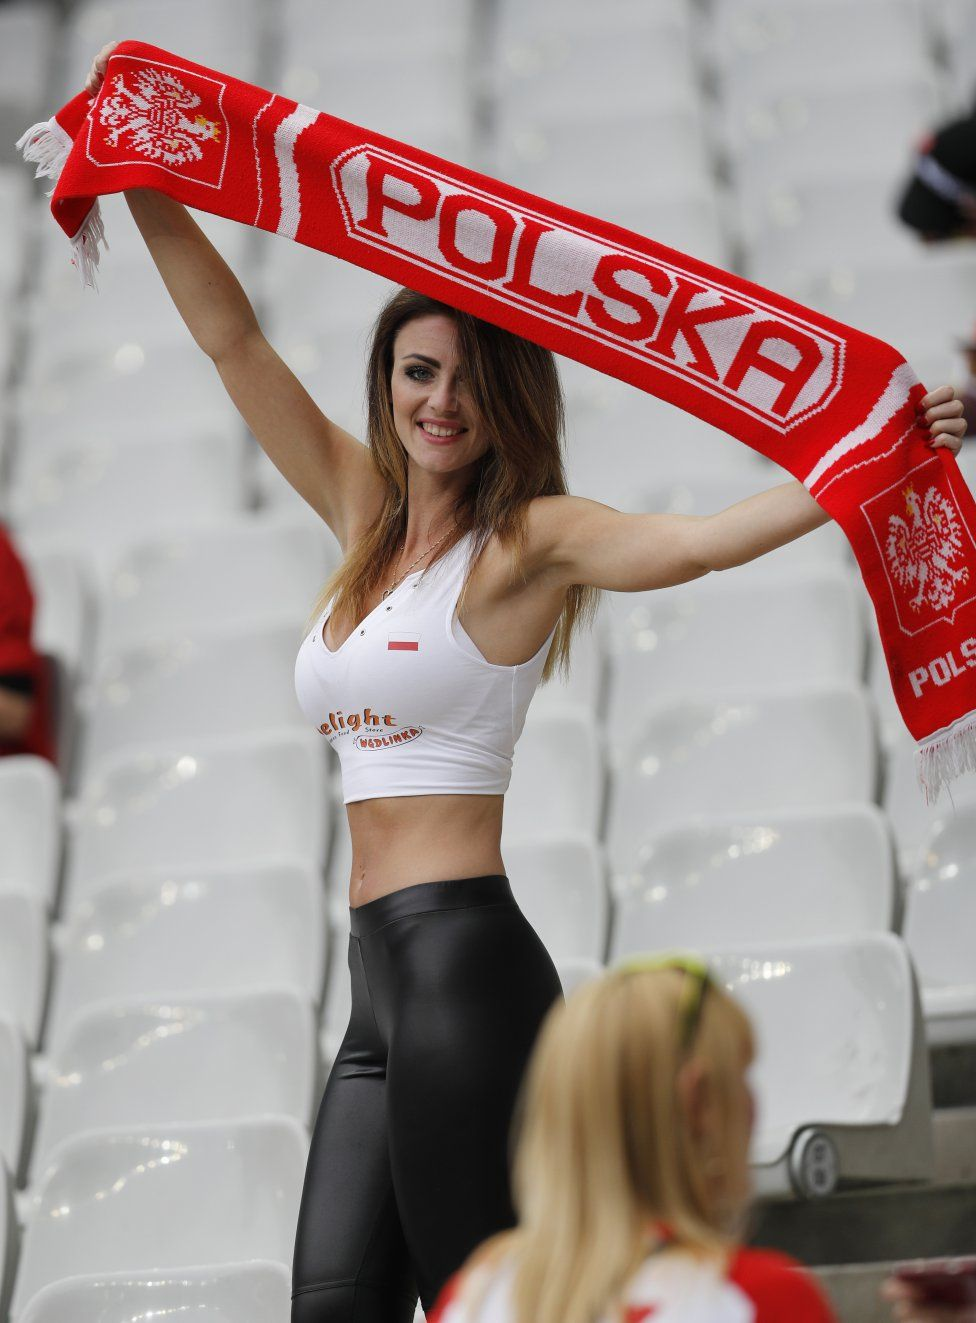 Image result for polish soccer fan